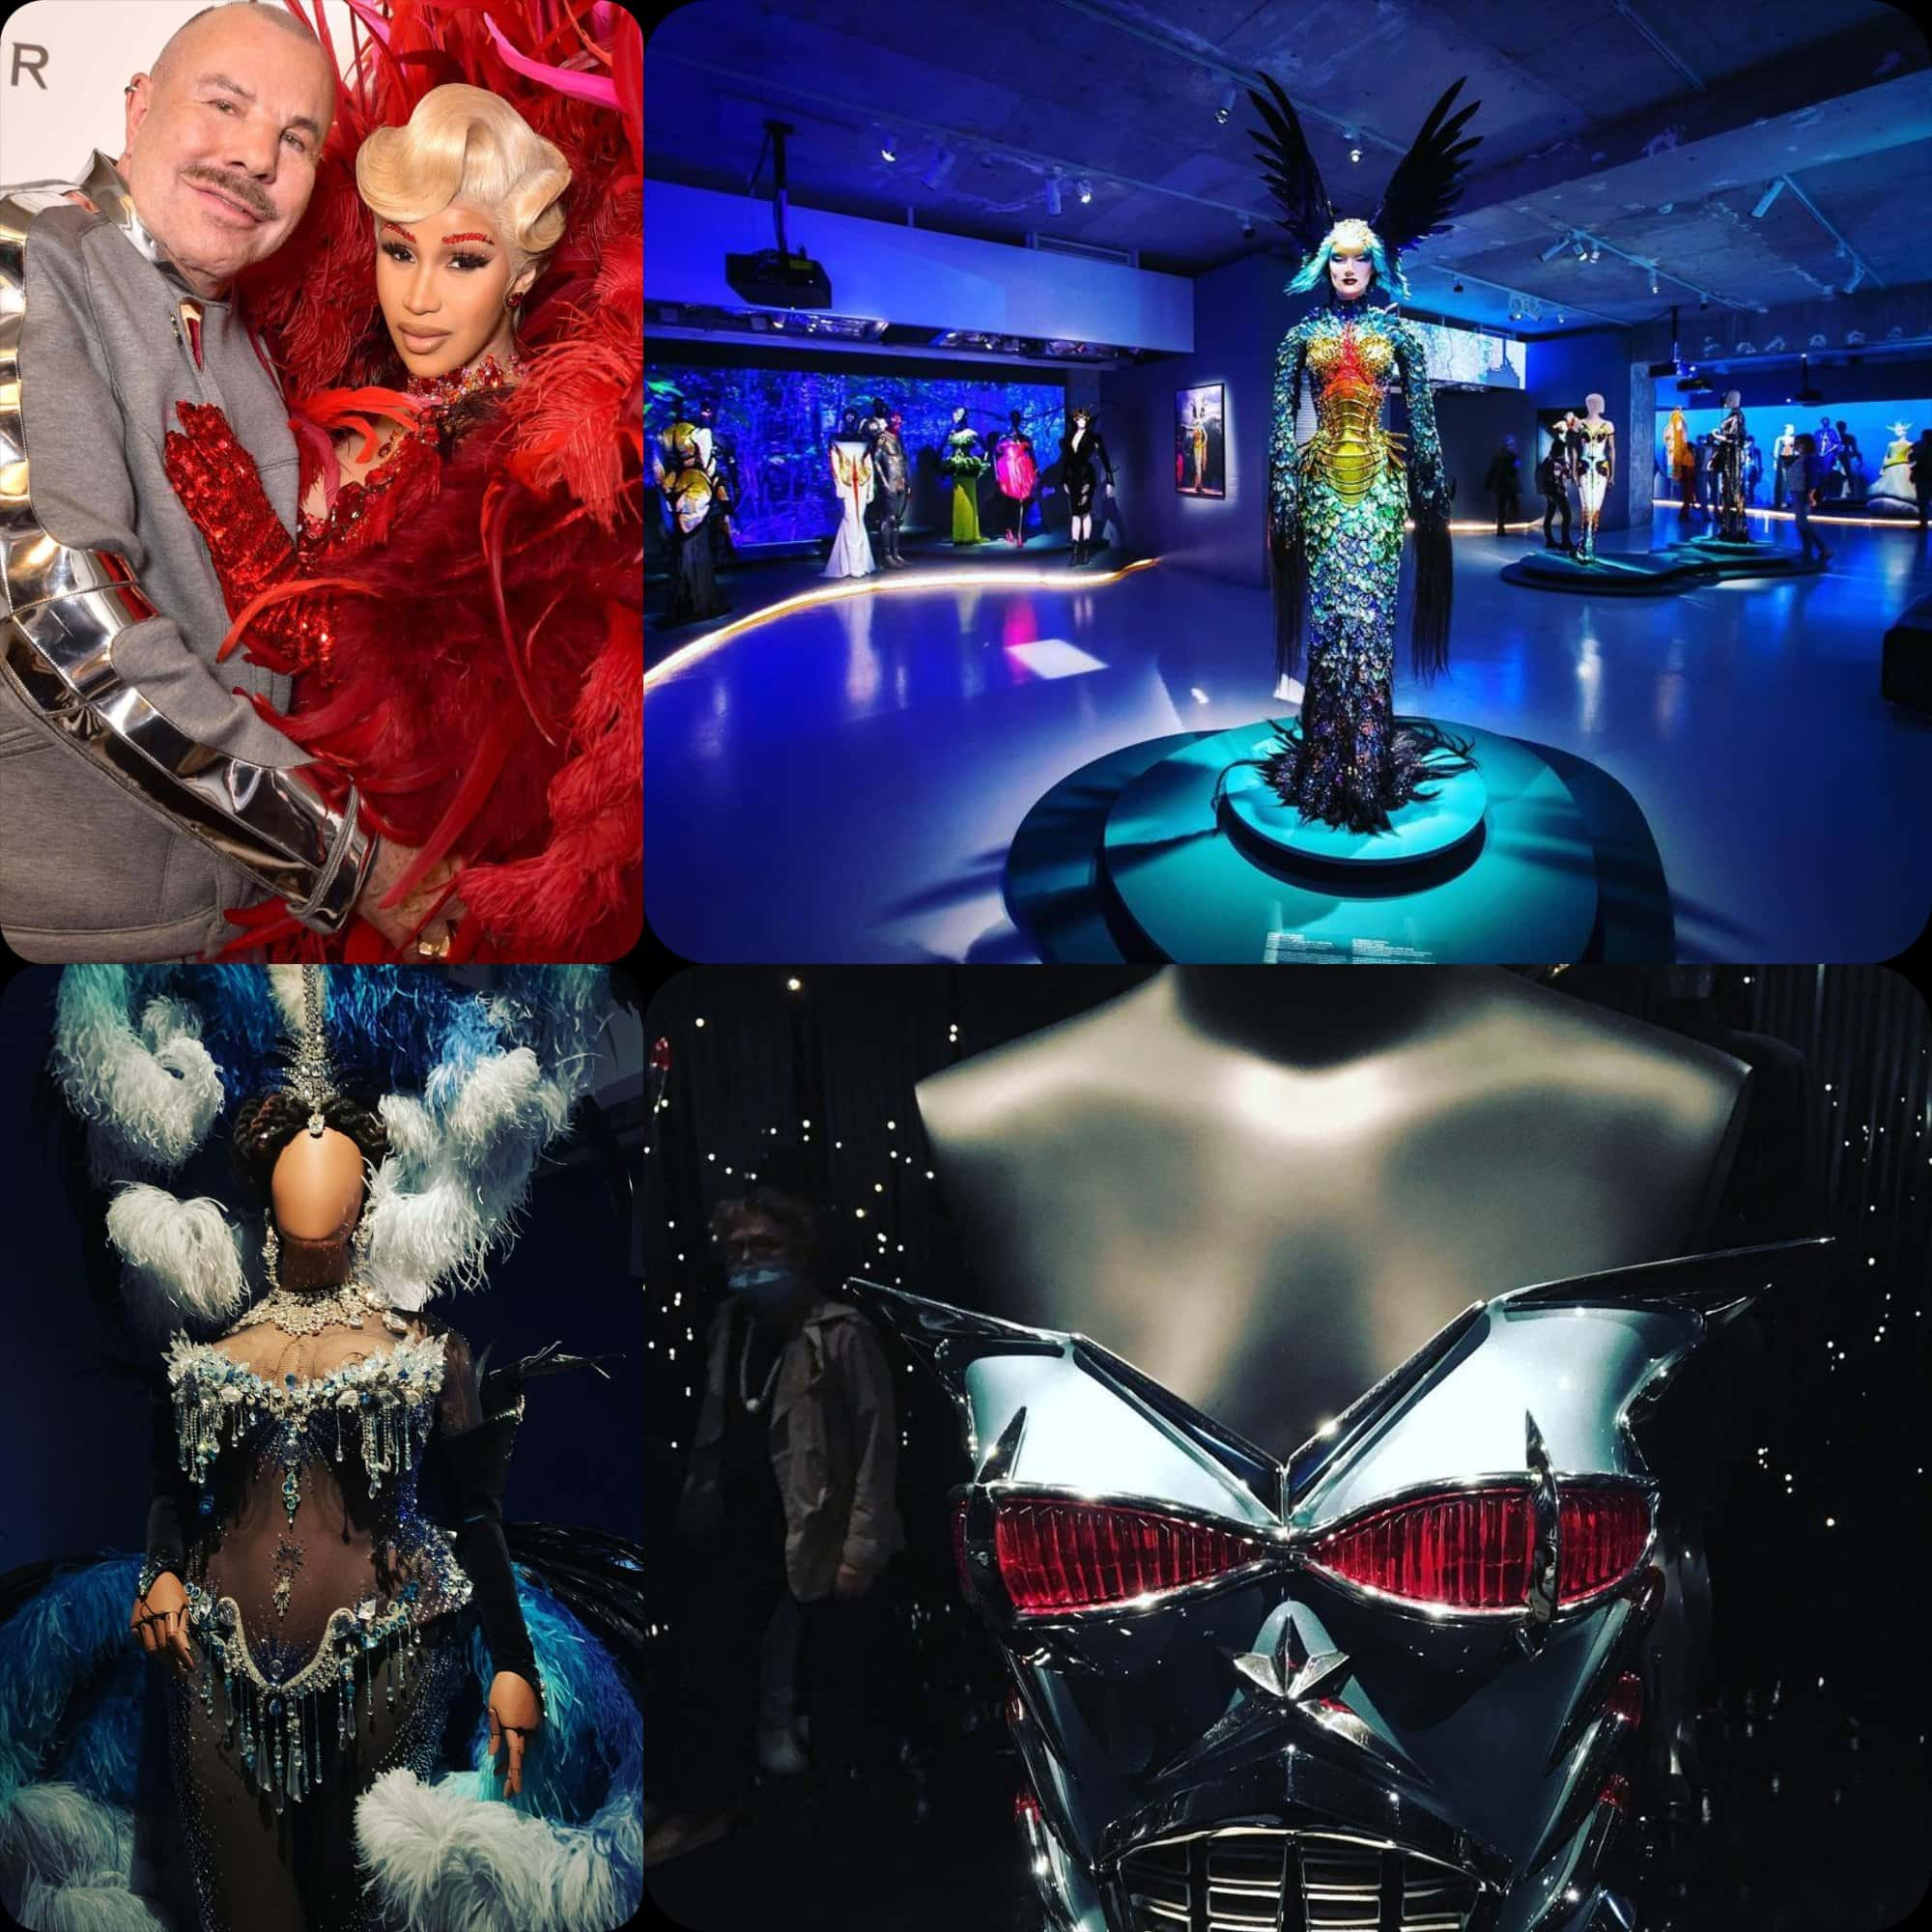 Thierry Mugler and Cardi B at COUTURISSIME expo at MAD Paris by RUNWAY MAGAZINE